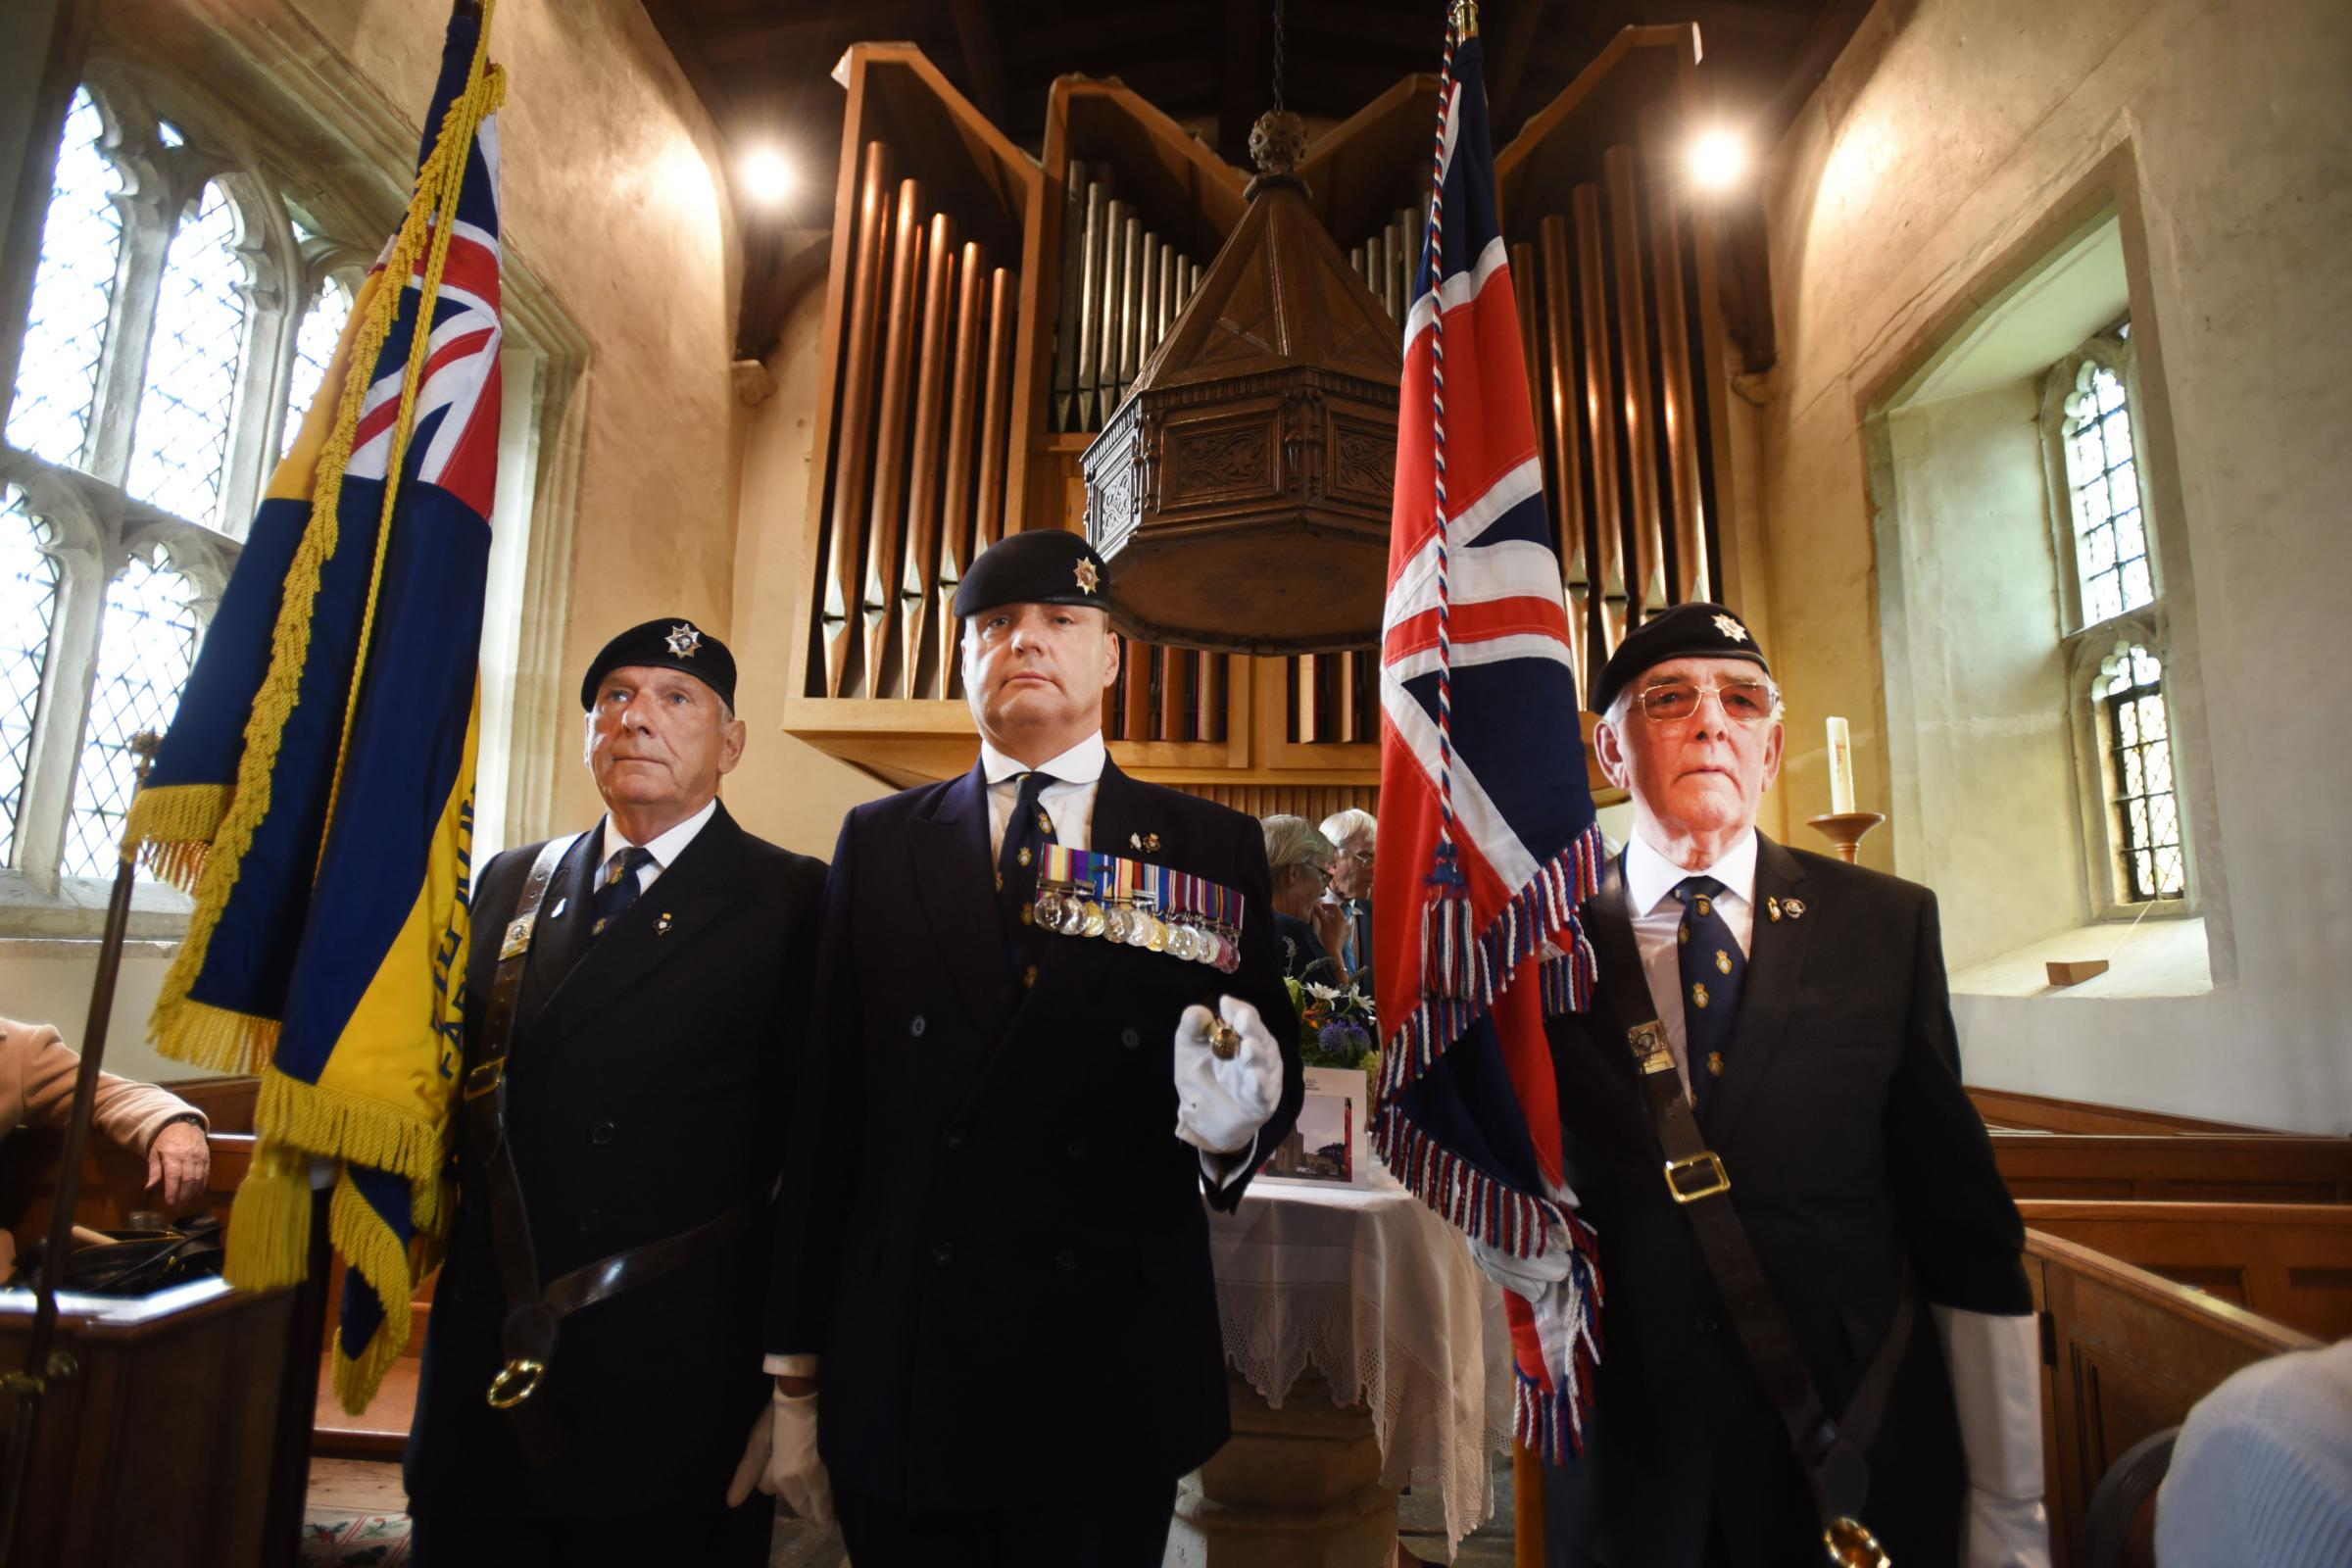 Members of the Royal British Legion Faringdon and District branch pay their respects to the fallen at Passchendaele in a ceremony at St Faith's Church, Shellingford. Picture Richard CAve